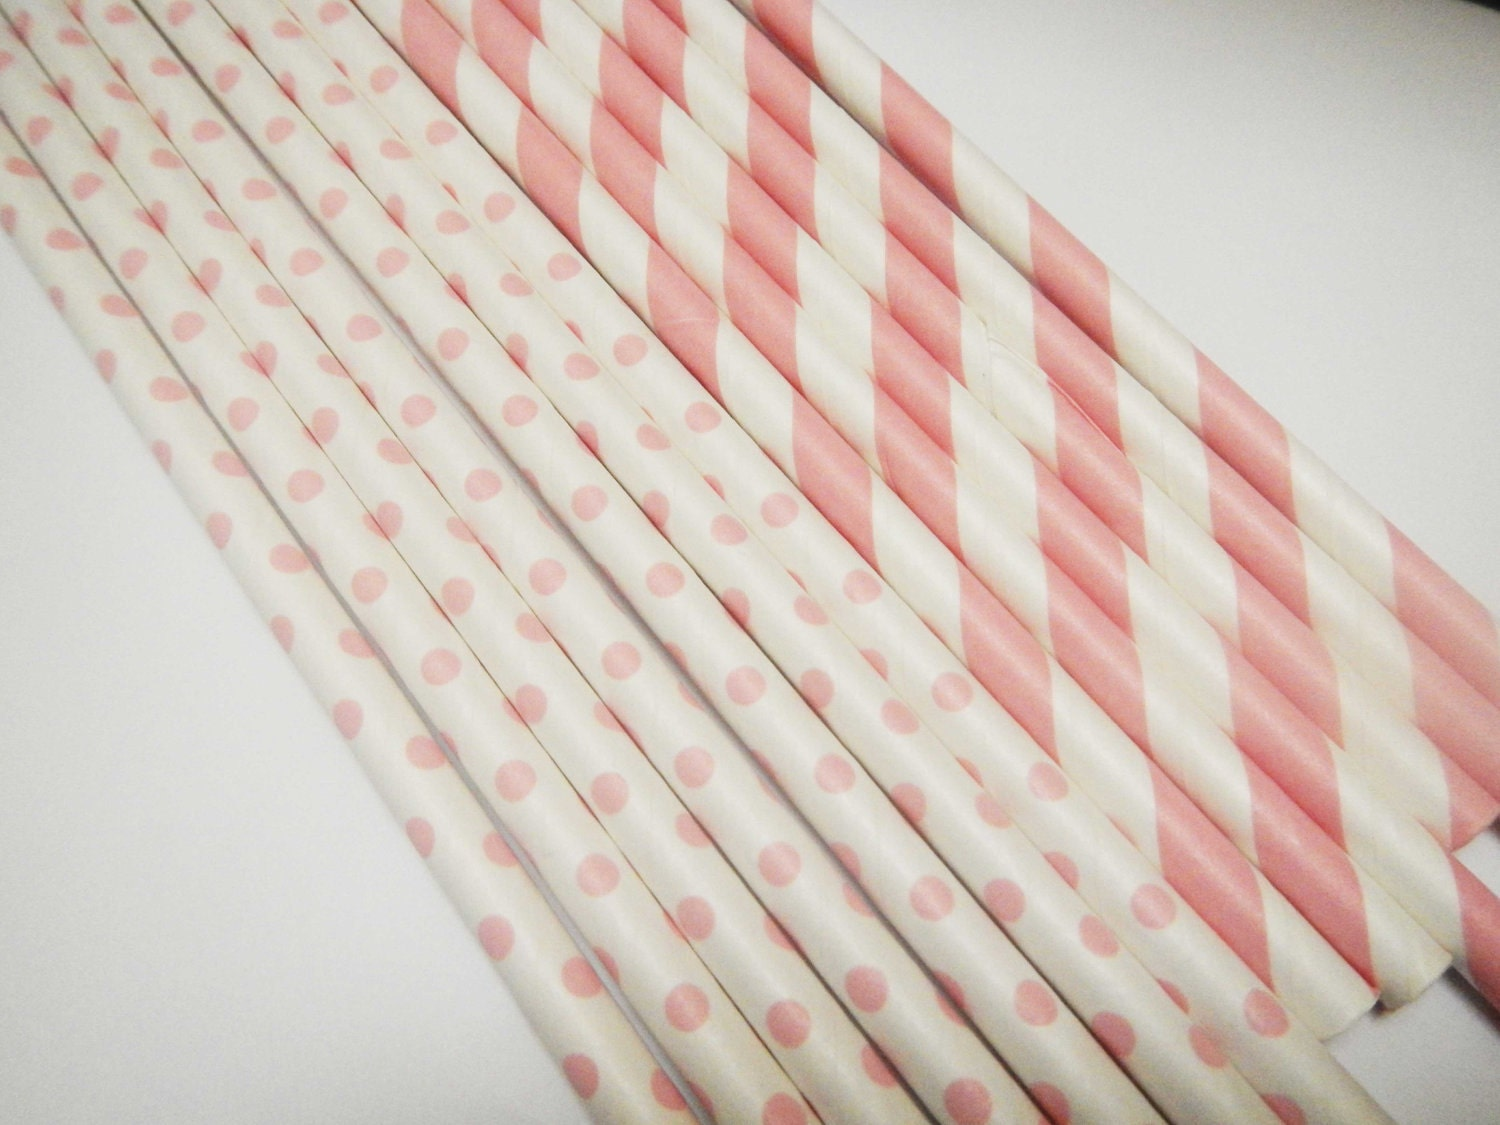 NEW 60 Baby Pink Stripe & Polka Dot Paper Straws - Parties, weddings, graduations  FREE DIY Flags